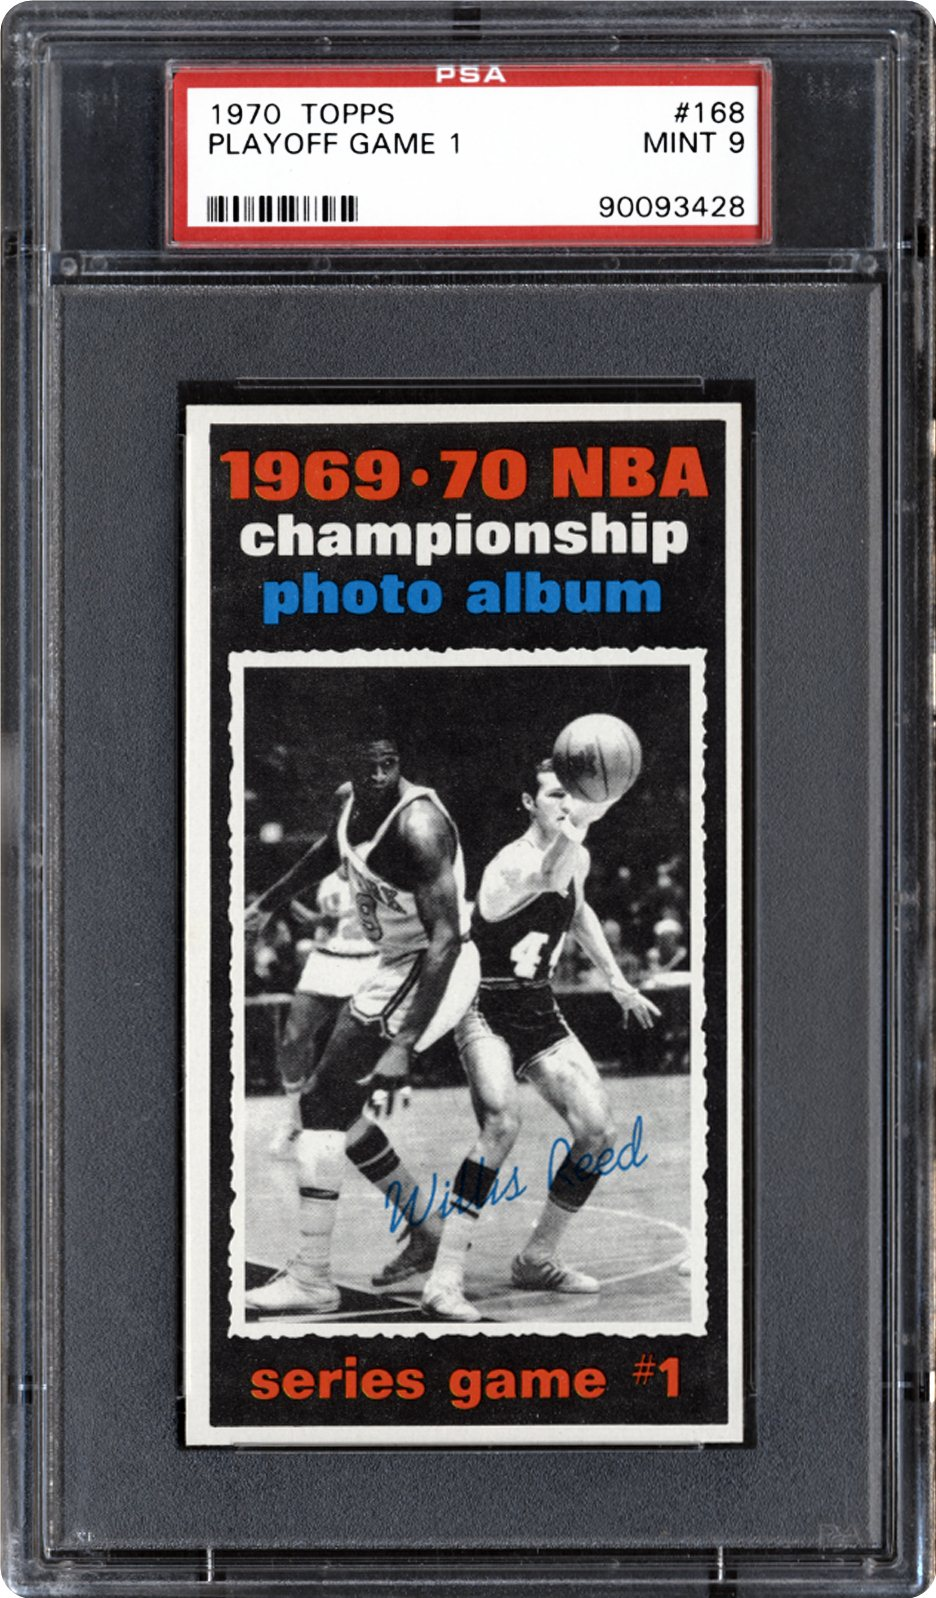 1970 Topps Playoff Game 1 (Willis Reed) | PSA CardFacts™